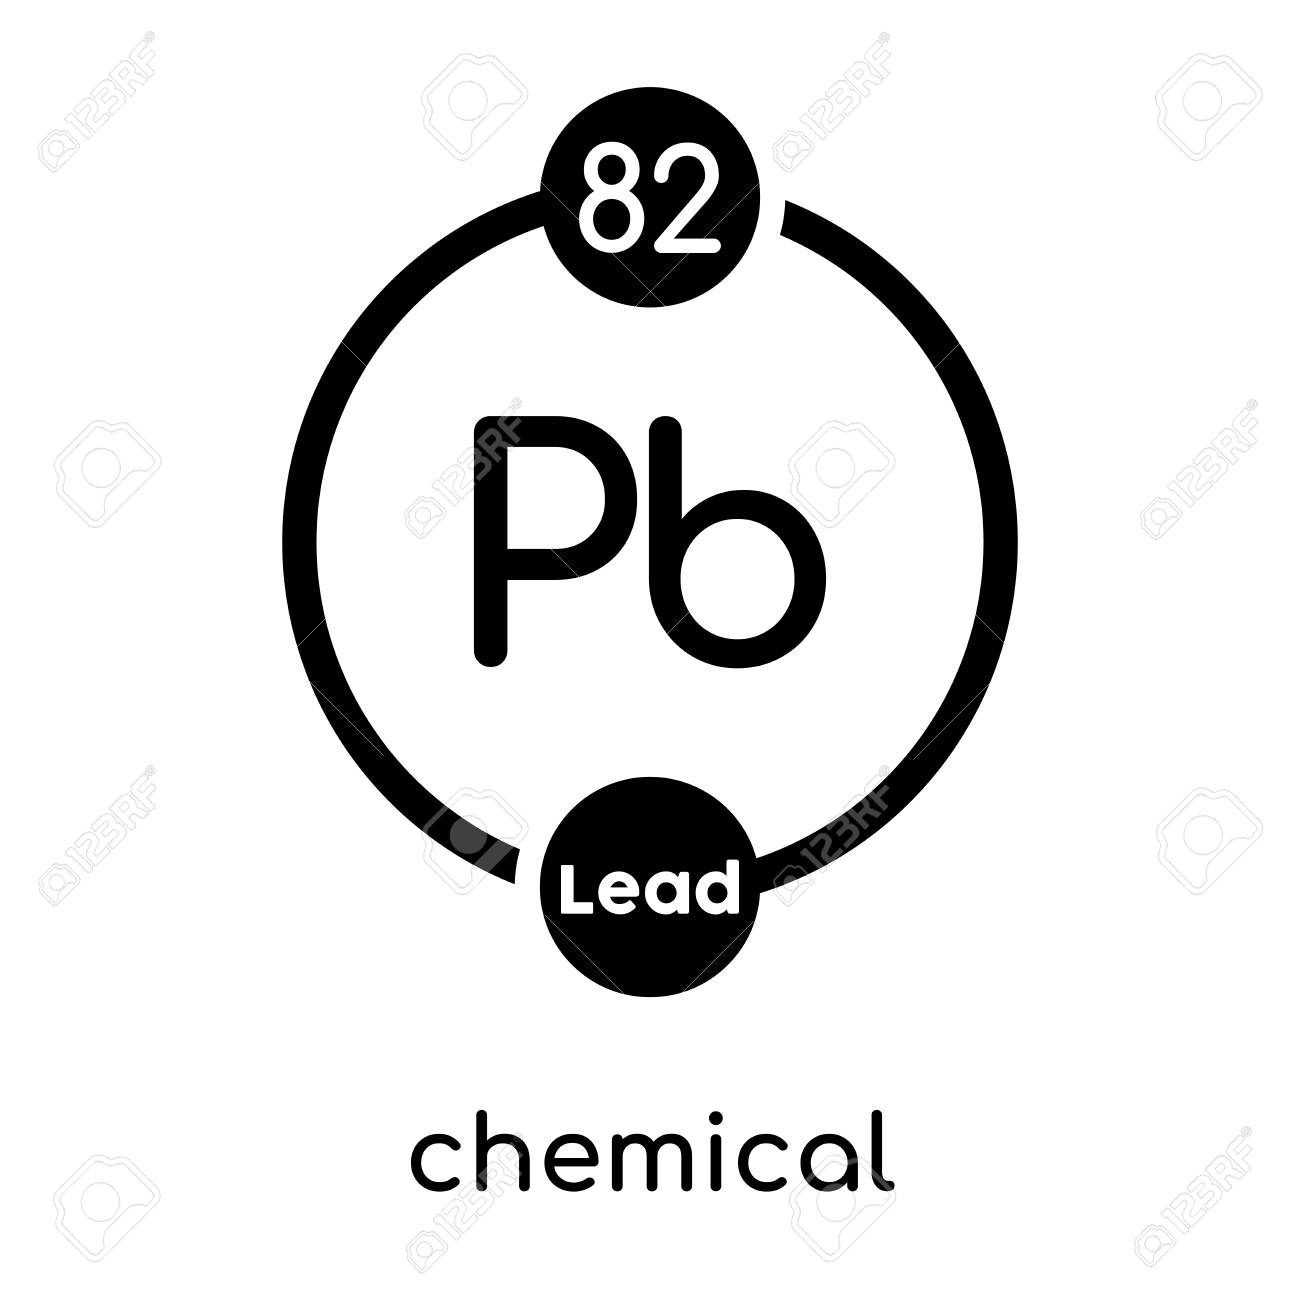 chemical symbol lead isolated on white background for your web Silver Element chemical symbol lead isolated on white background for your web and mobile app design